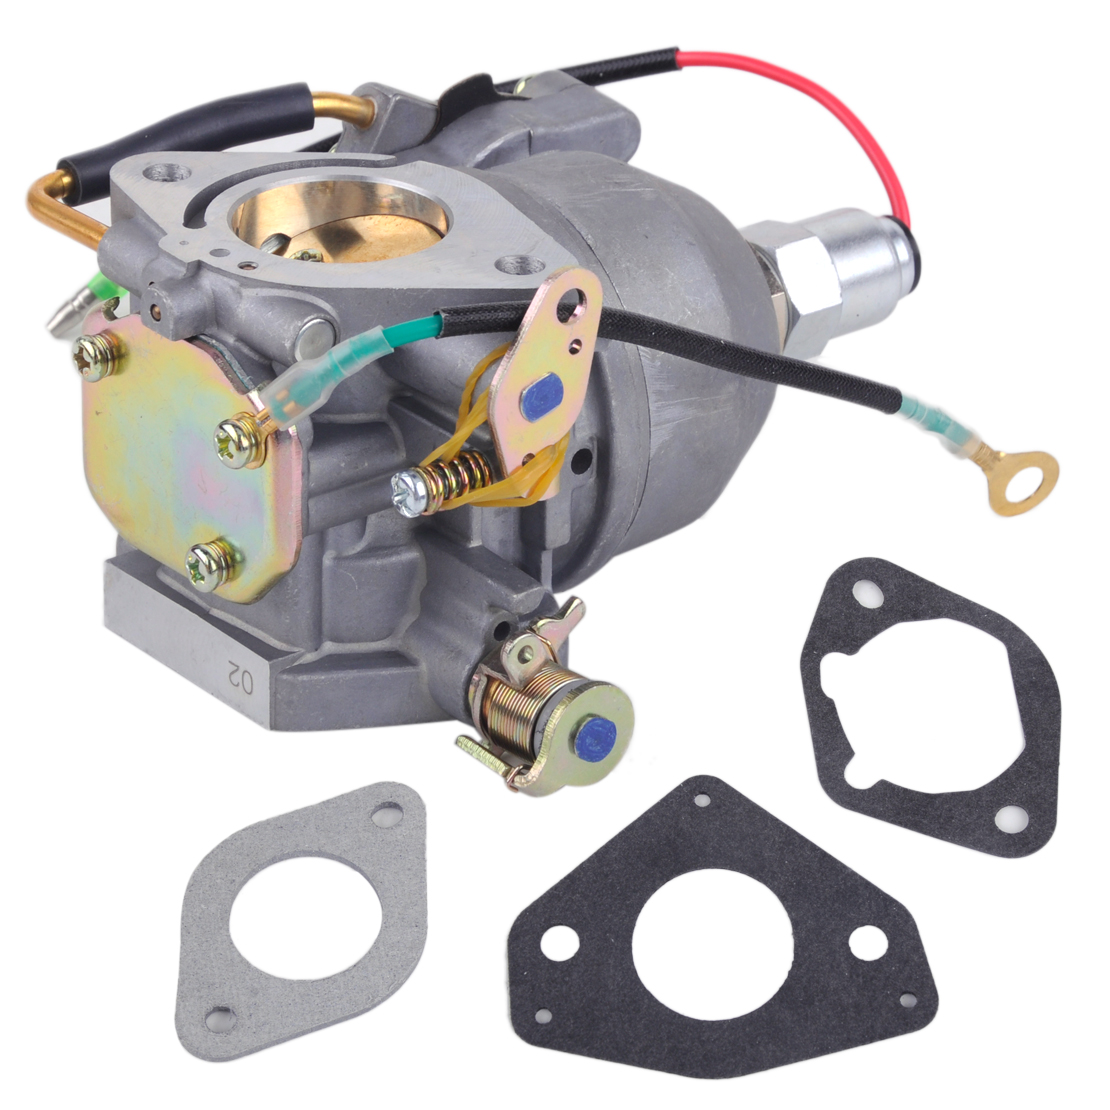 LETAOSK New Carburetor Carb with Solenoid Auto Engine Part fit for Kohler CV730 CV740 24853102-S 24-853-102 Replacement Set bigbigroad car trunk handle rear view backup reverse camera for skoda roomster fabia octavia 5e mk2 yeti superb audi a1